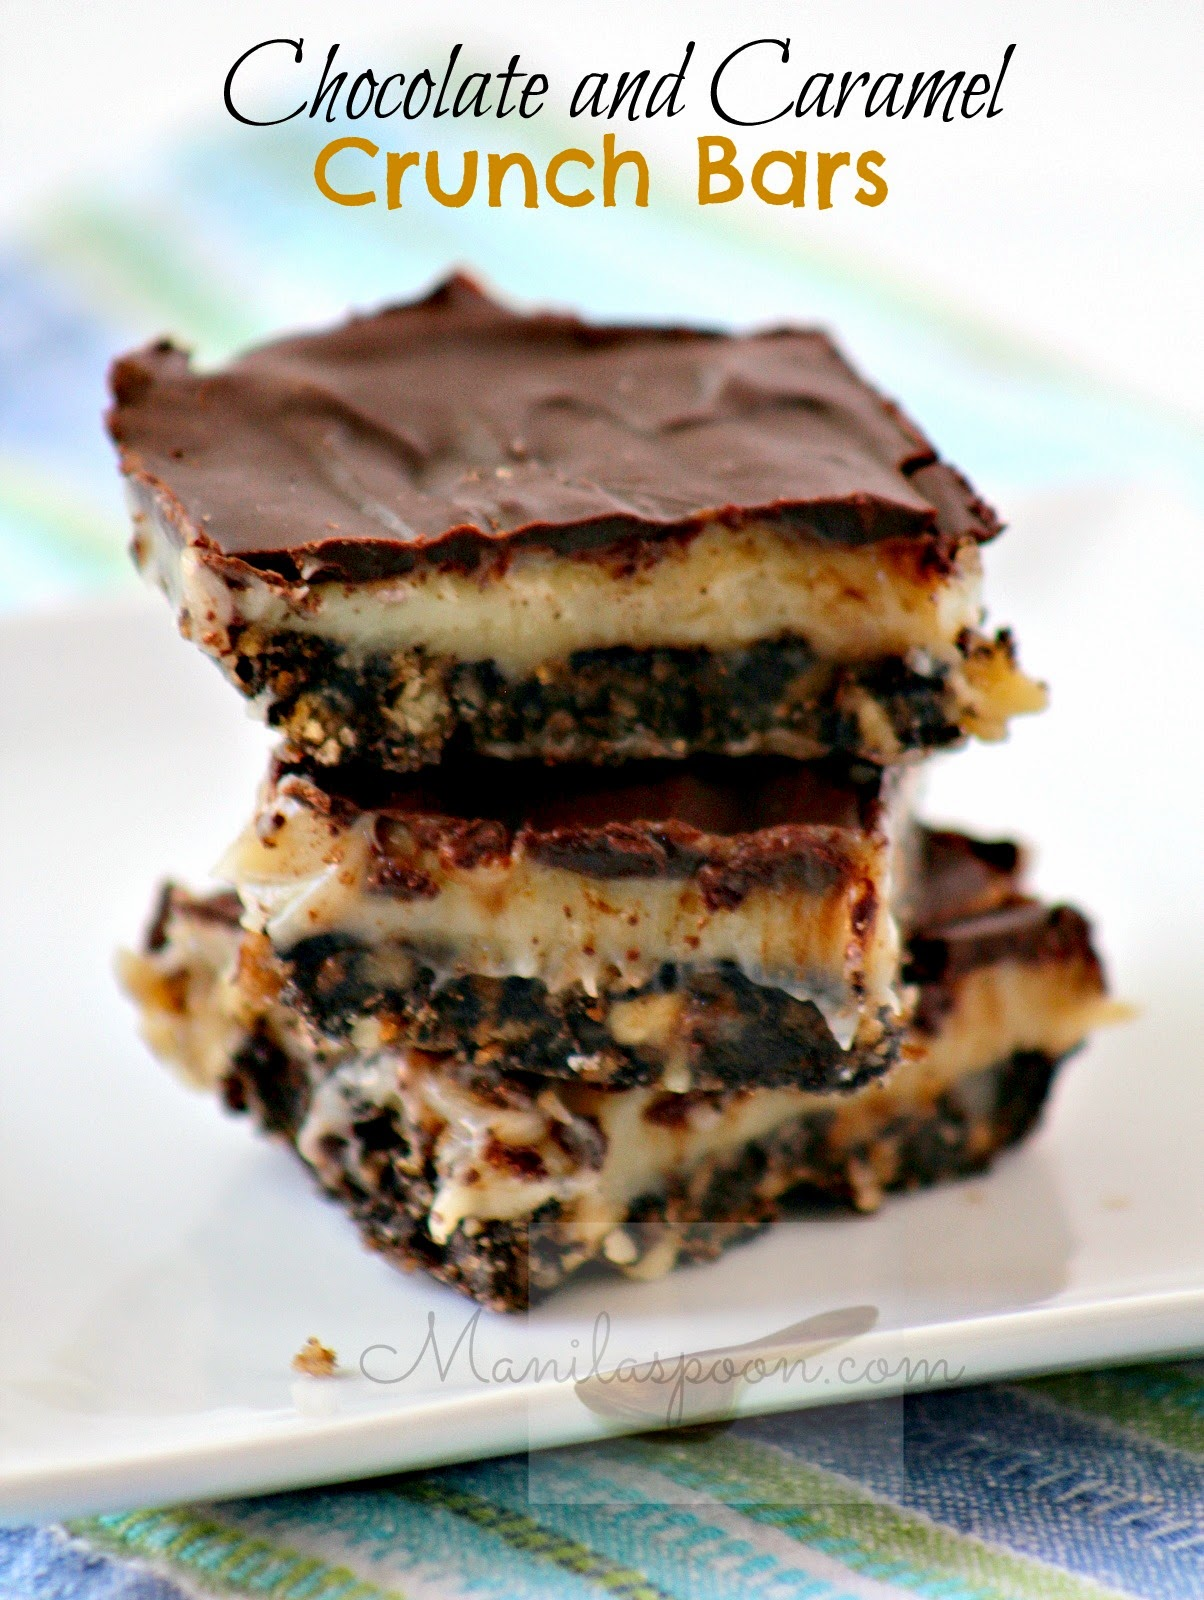 Layers of pecan crumb crust, delicious caramel filling and then melted chocolate on top - how can you resist these No Bake Chocolate and Caramel Crunch Bars? #nobake #chocolate #caramel #bars #desserts #sweets